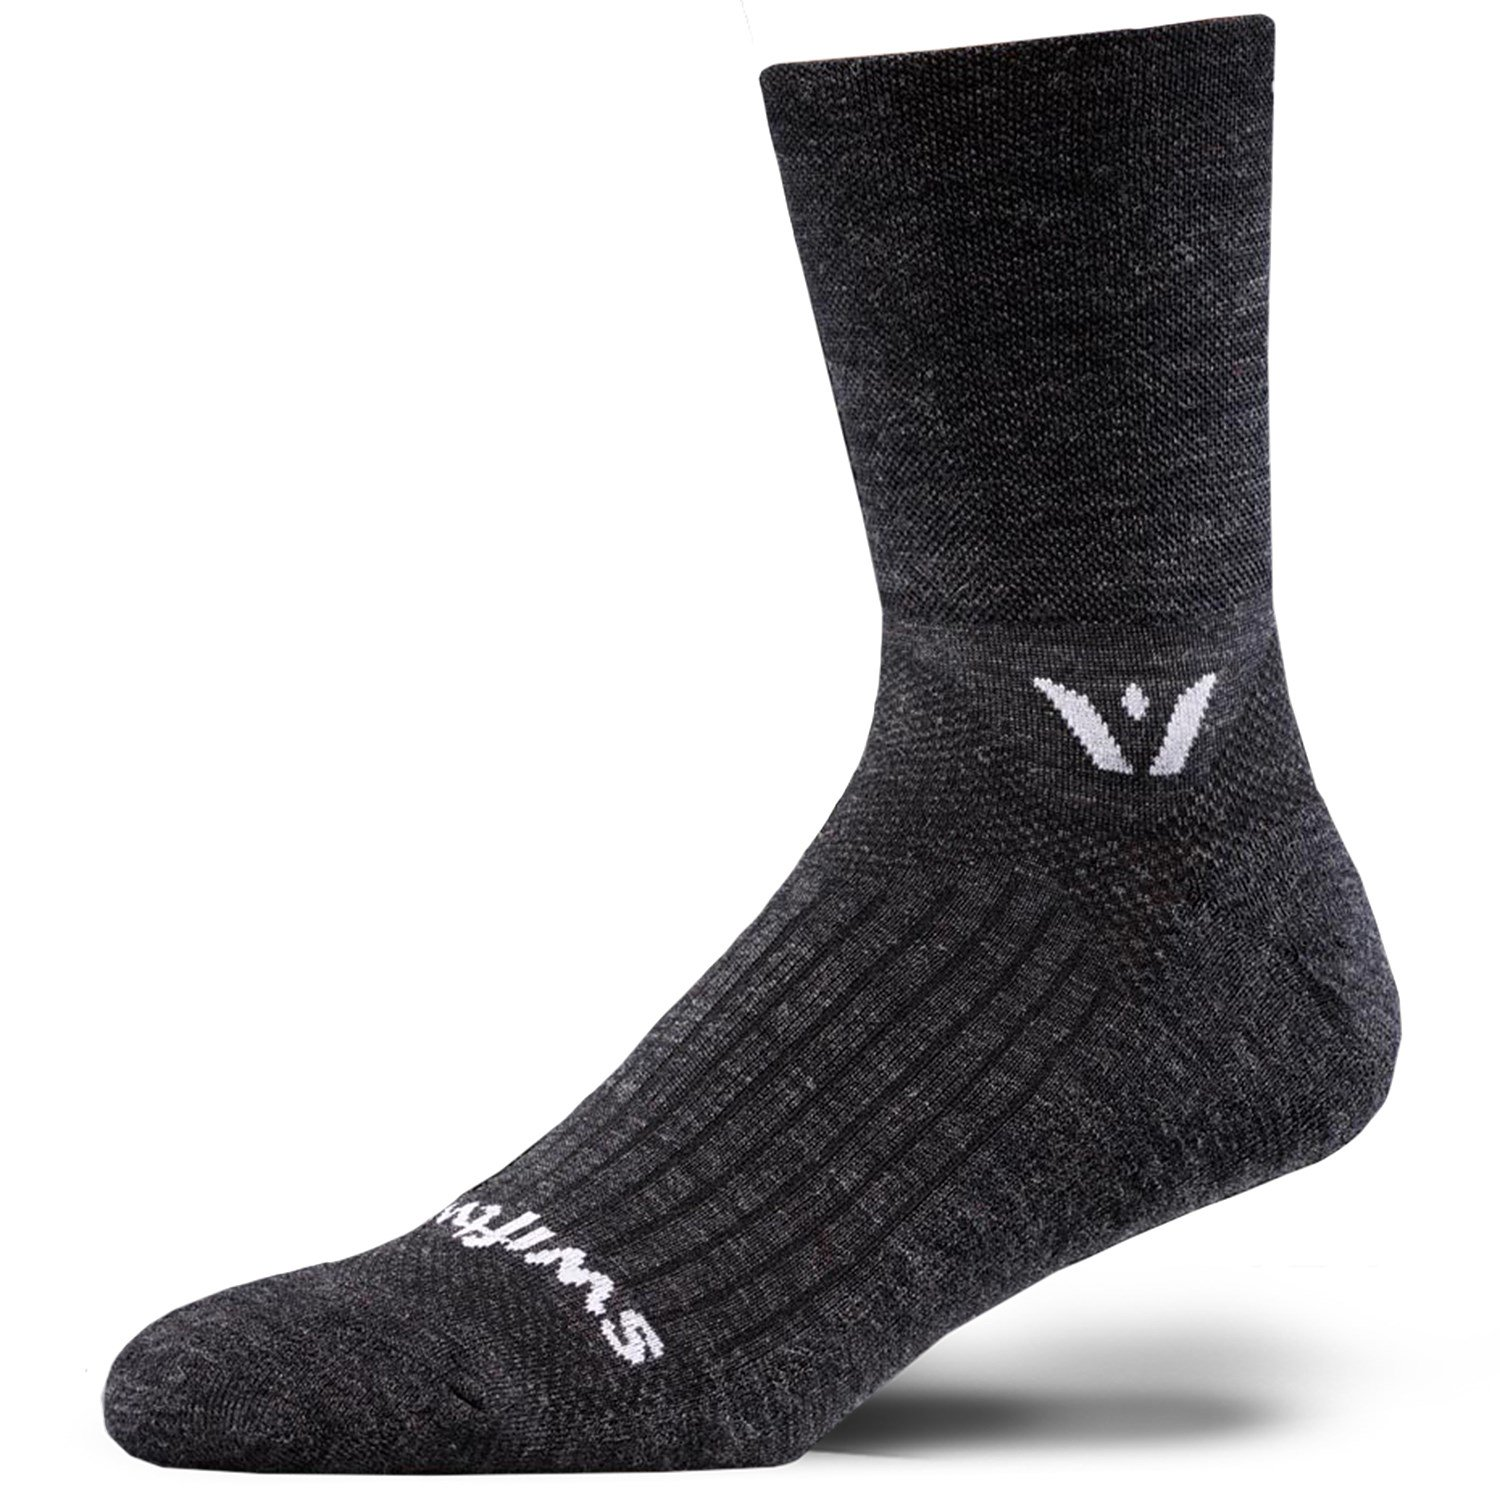 Swiftwick Pursuit Four Sock